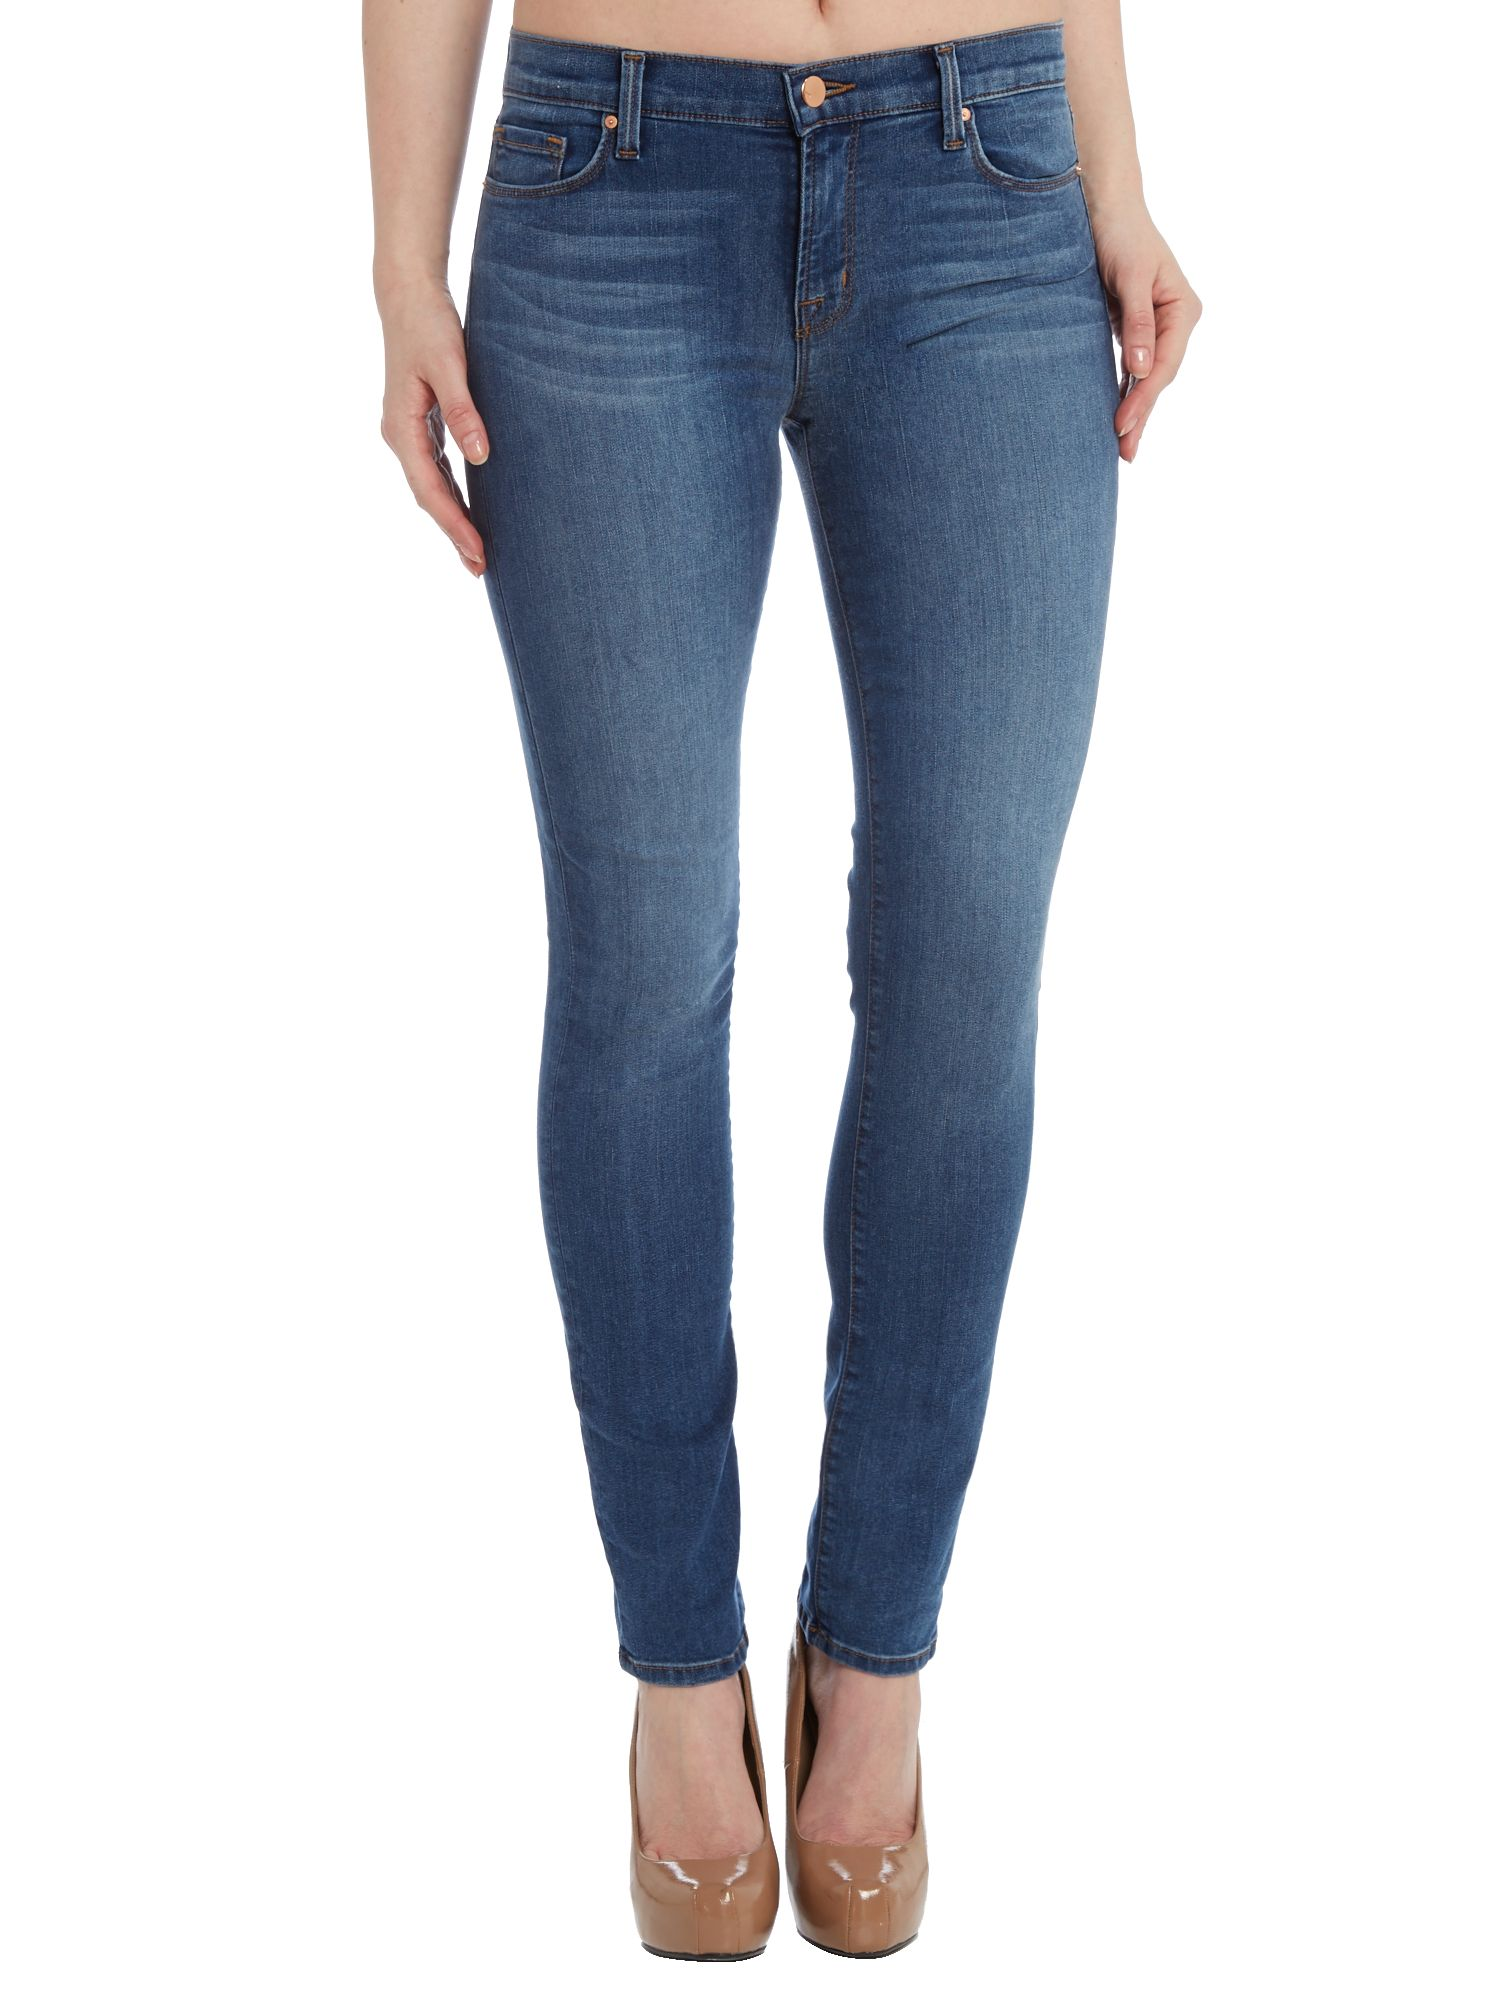 811 mid-rise skinny jeans in New Dawn